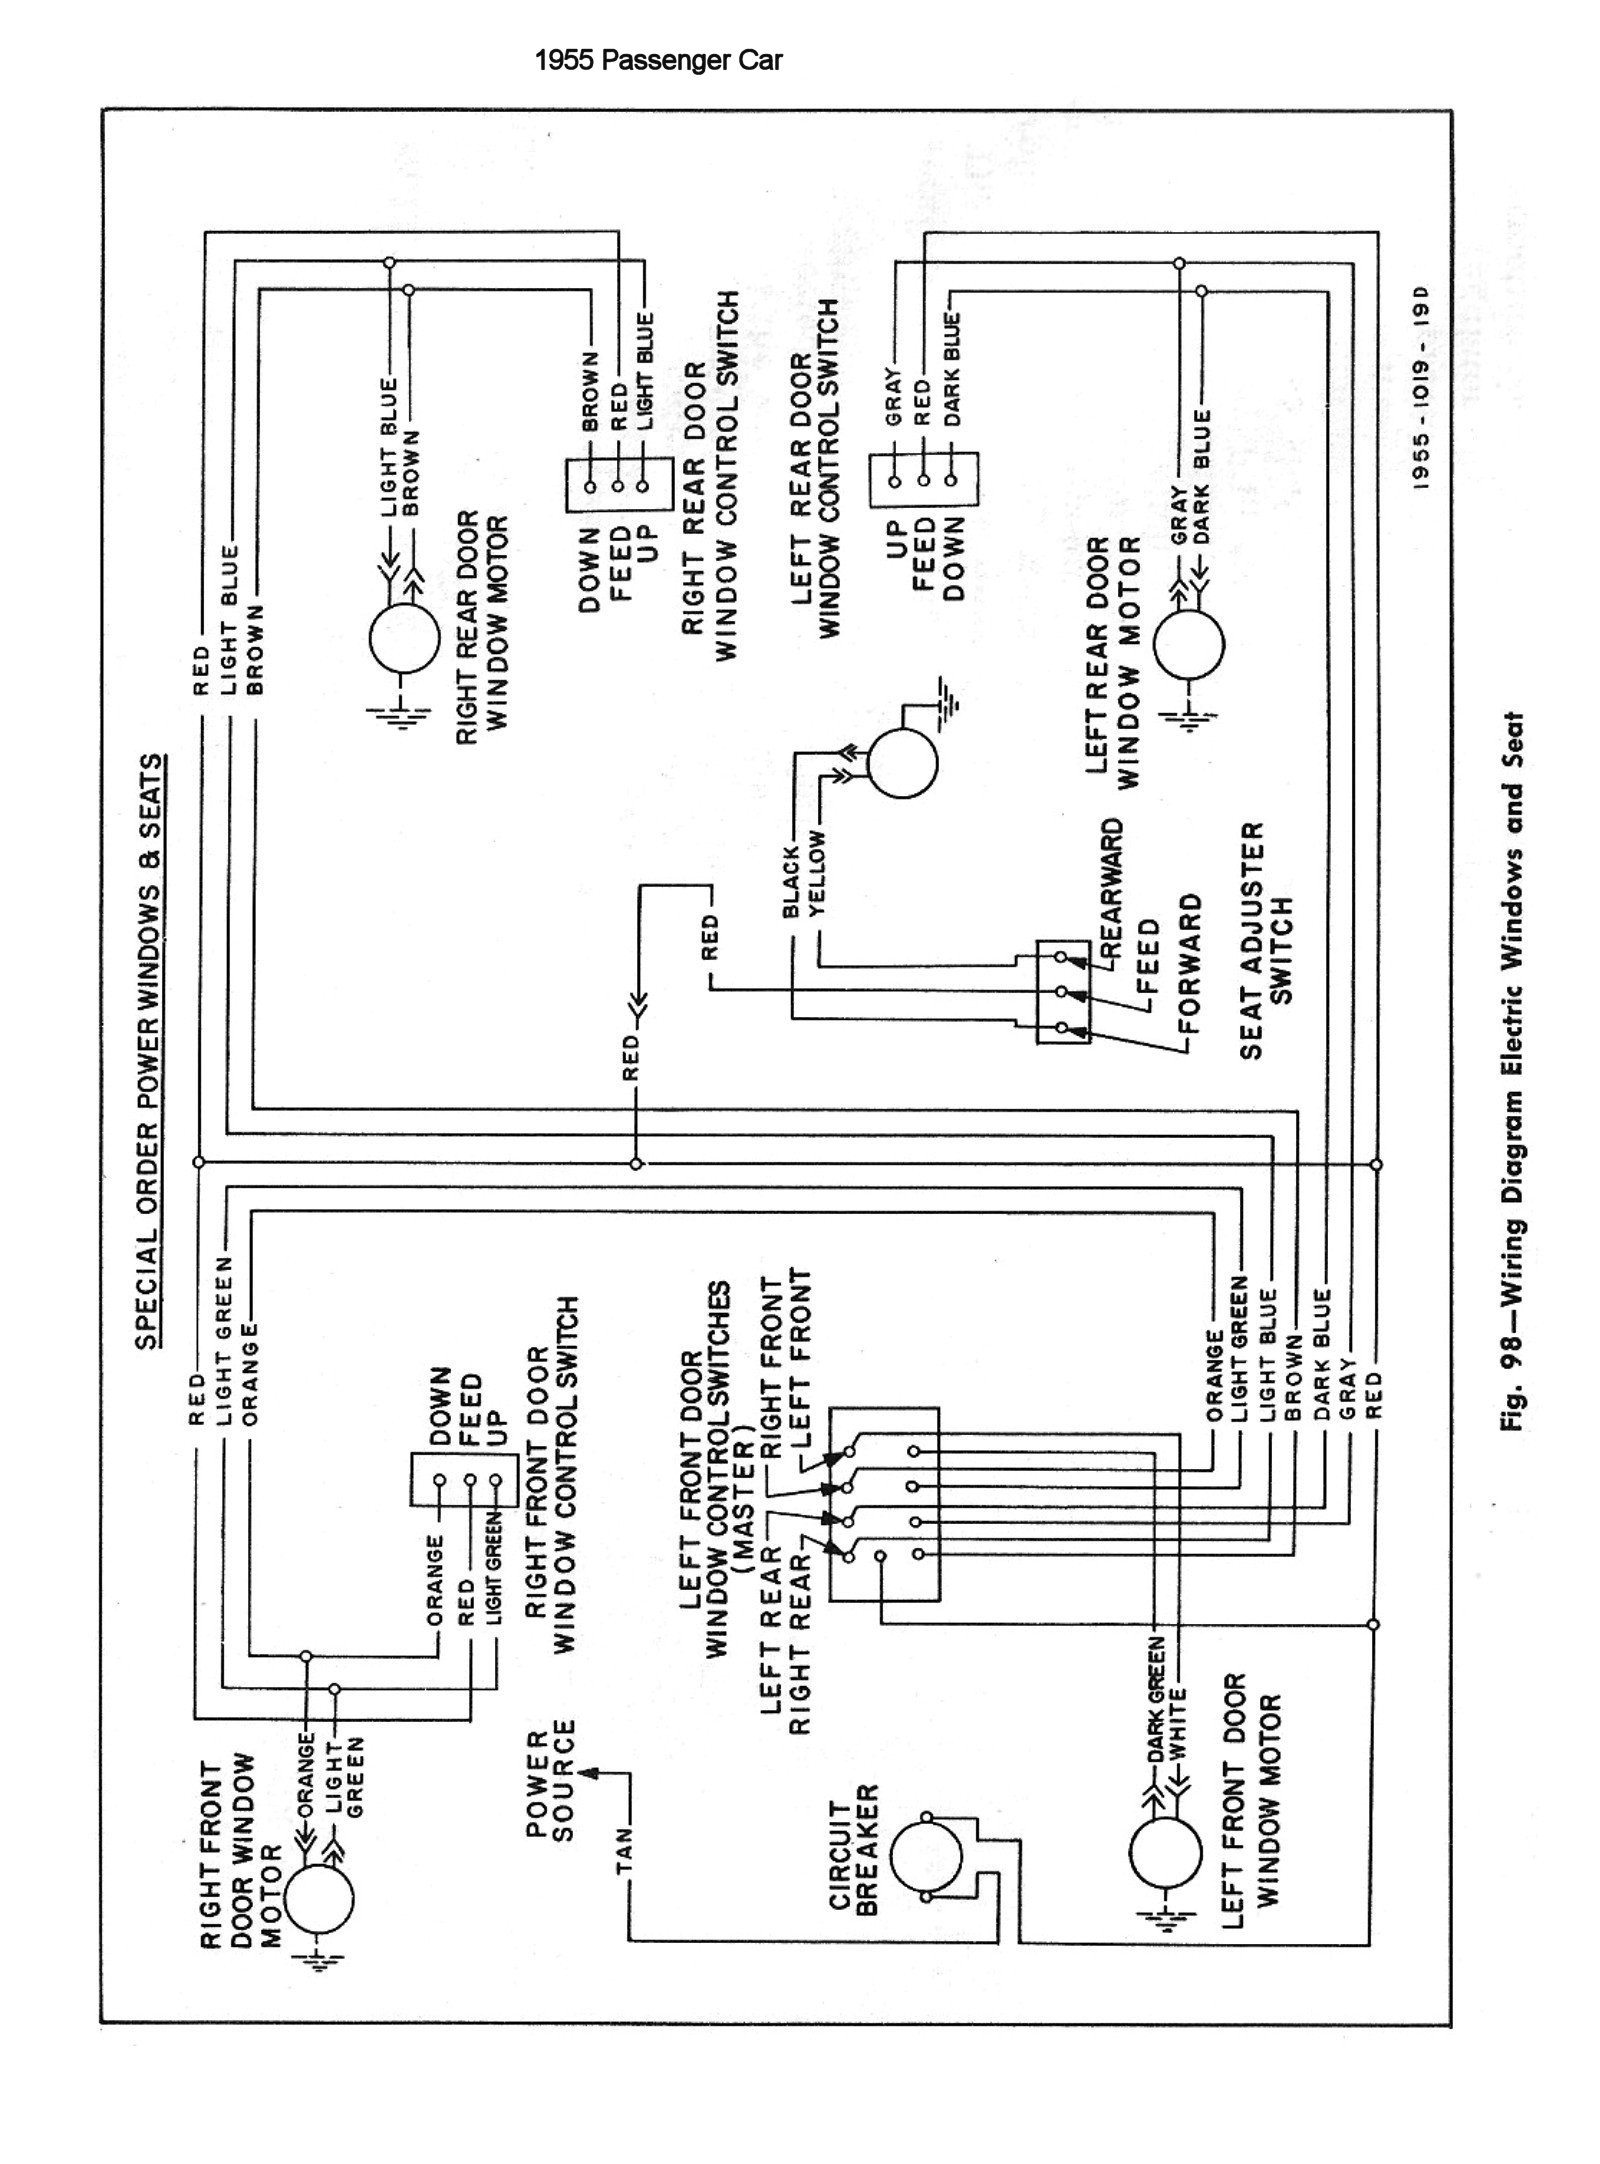 [DIAGRAM] Single Phase 240 Volt Photocell Wiring Diagram